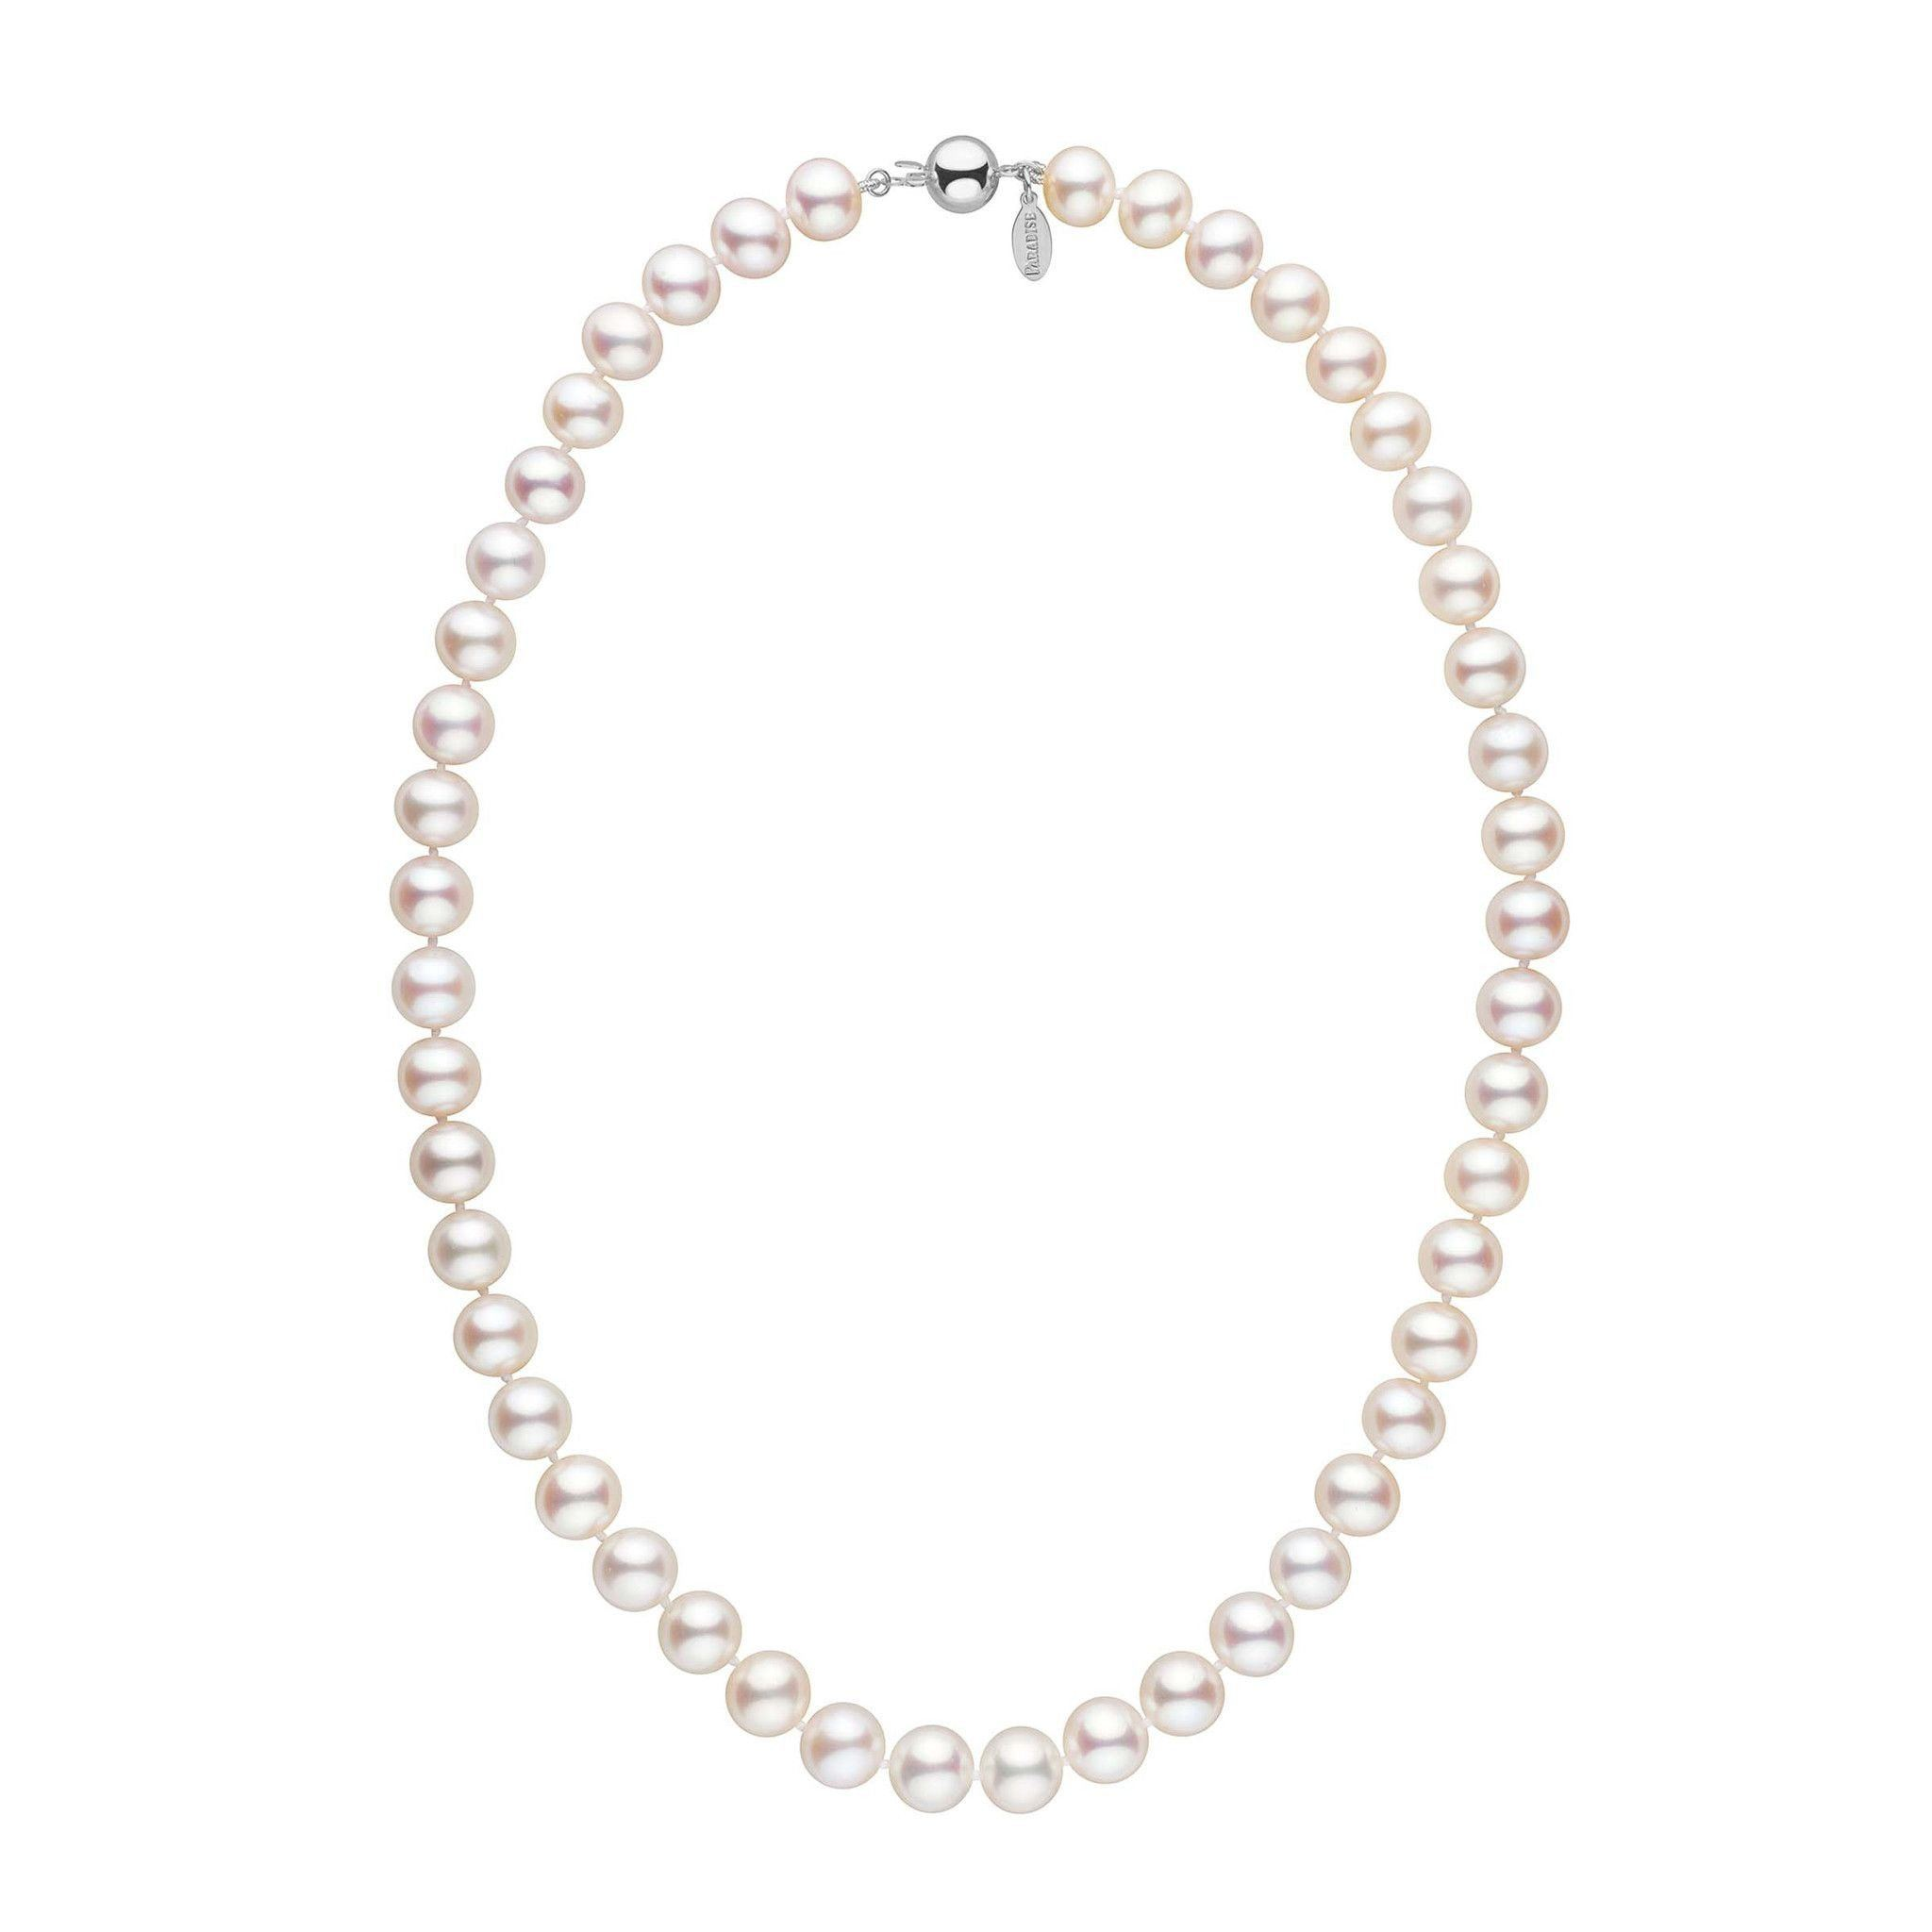 9.0-9.5 mm White Freshadama Freshwater Pearl Necklace by Pearl Paradise